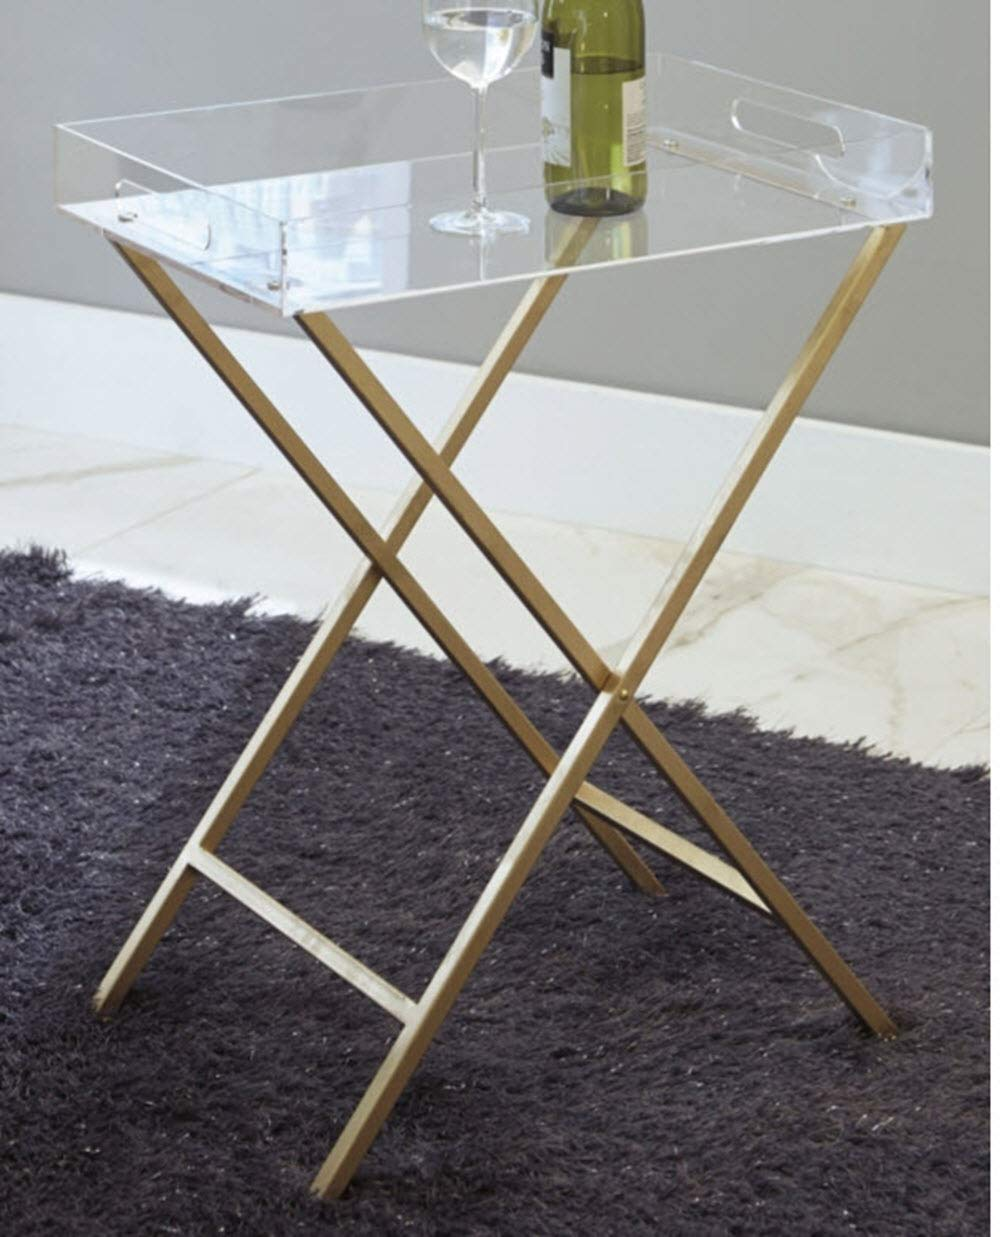 Ashley Furniture Signature Design - Ervinville Tray Accent Table - Contemporary - Clear Acrylic Top - Gold Metal Base by Signature Design by Ashley (Image #2)